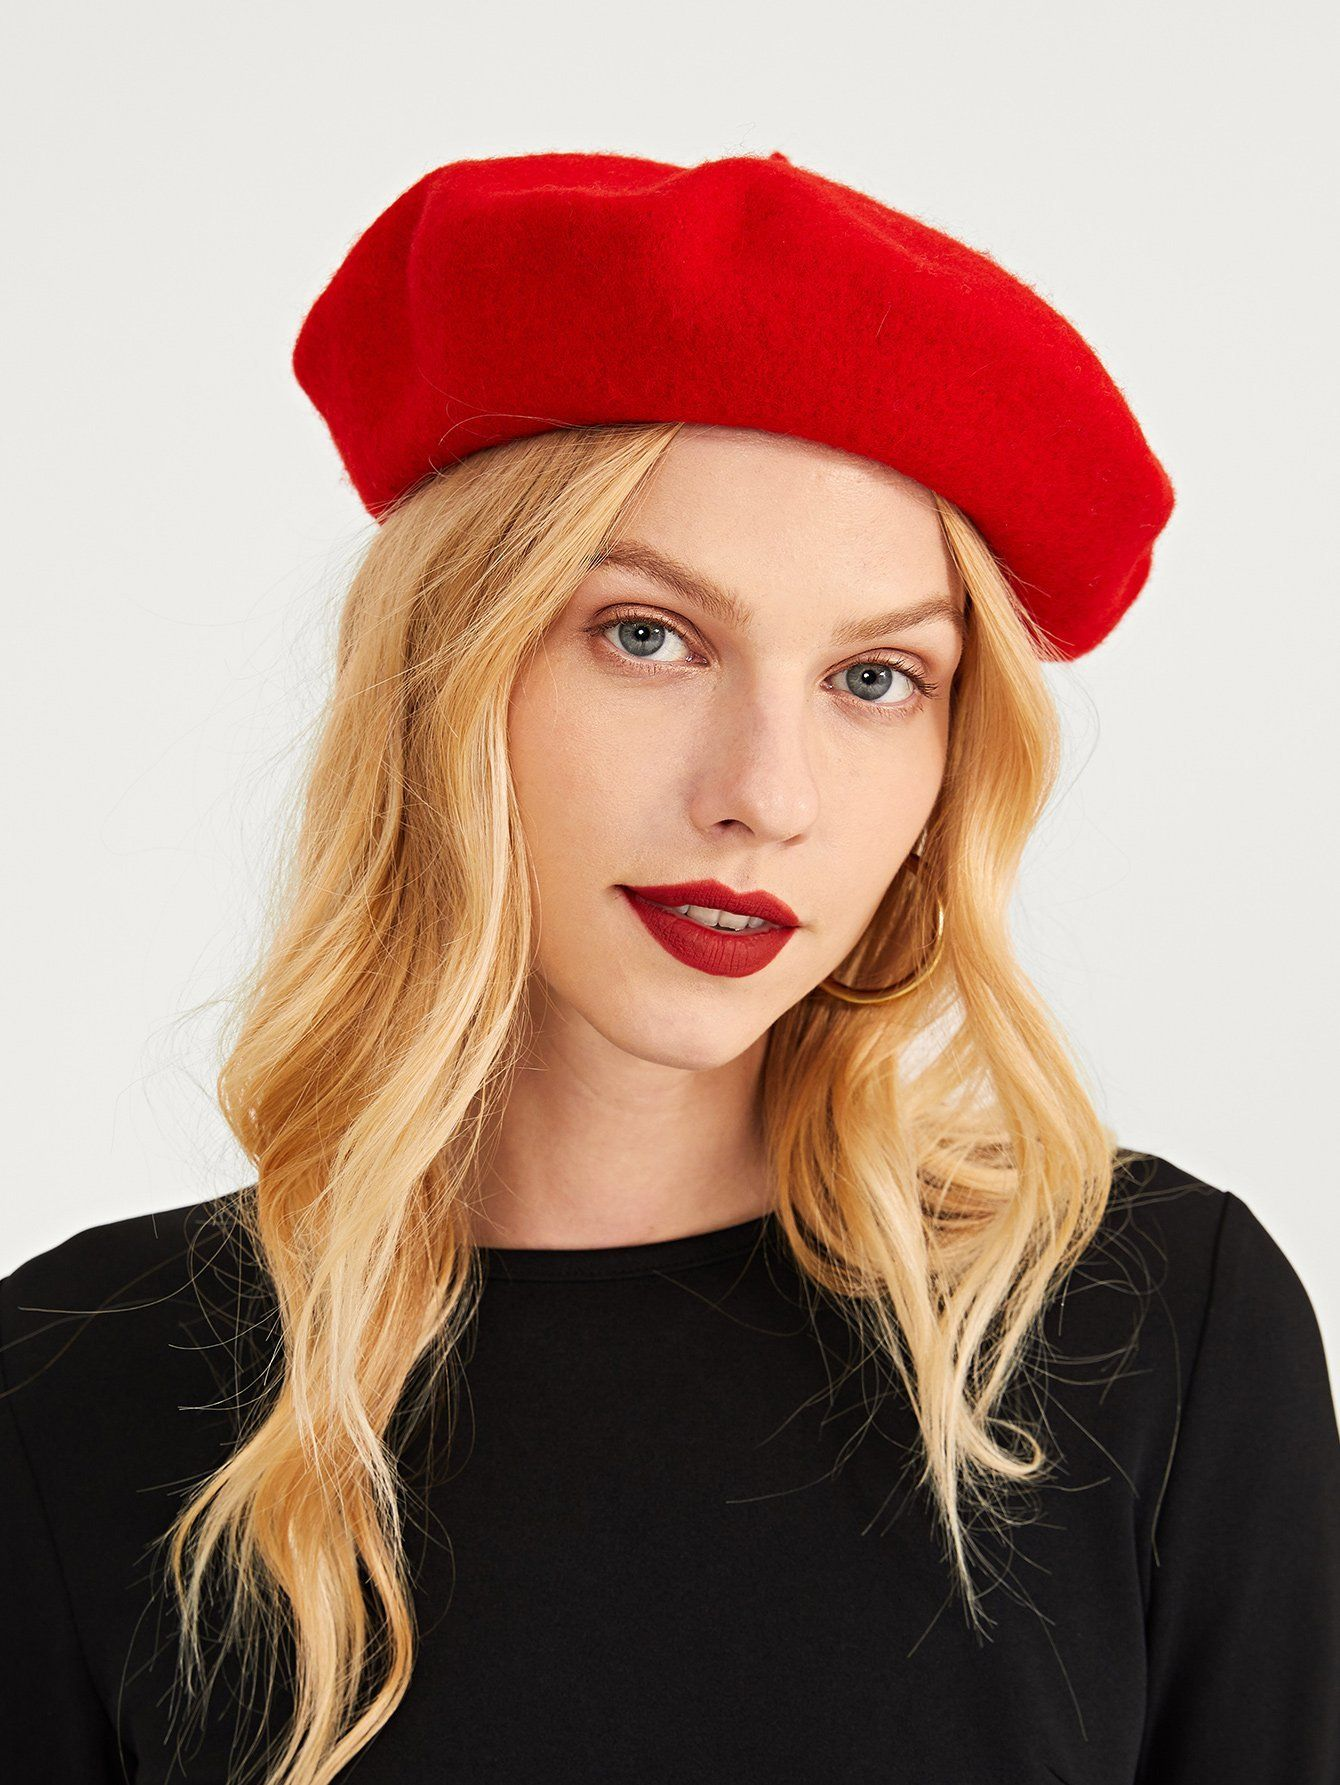 4e769a51797a85 Women's Plain Red Beret Cap FREE SHIP in 2019 | 美女2 | Beret, Red ...